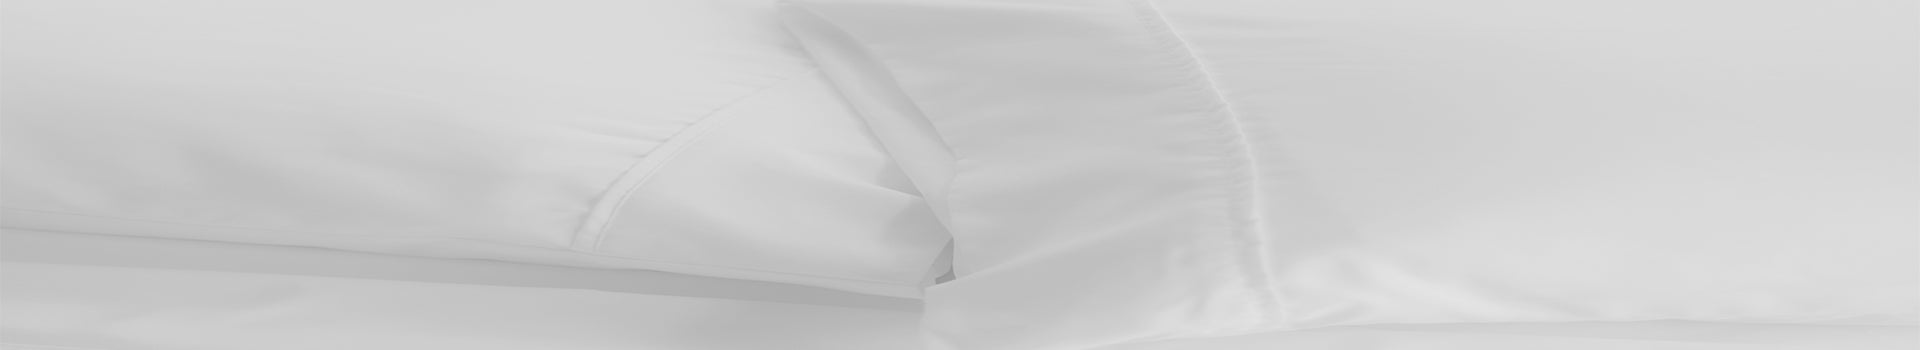 The External Collection Of Luxury Pillows And Cotton